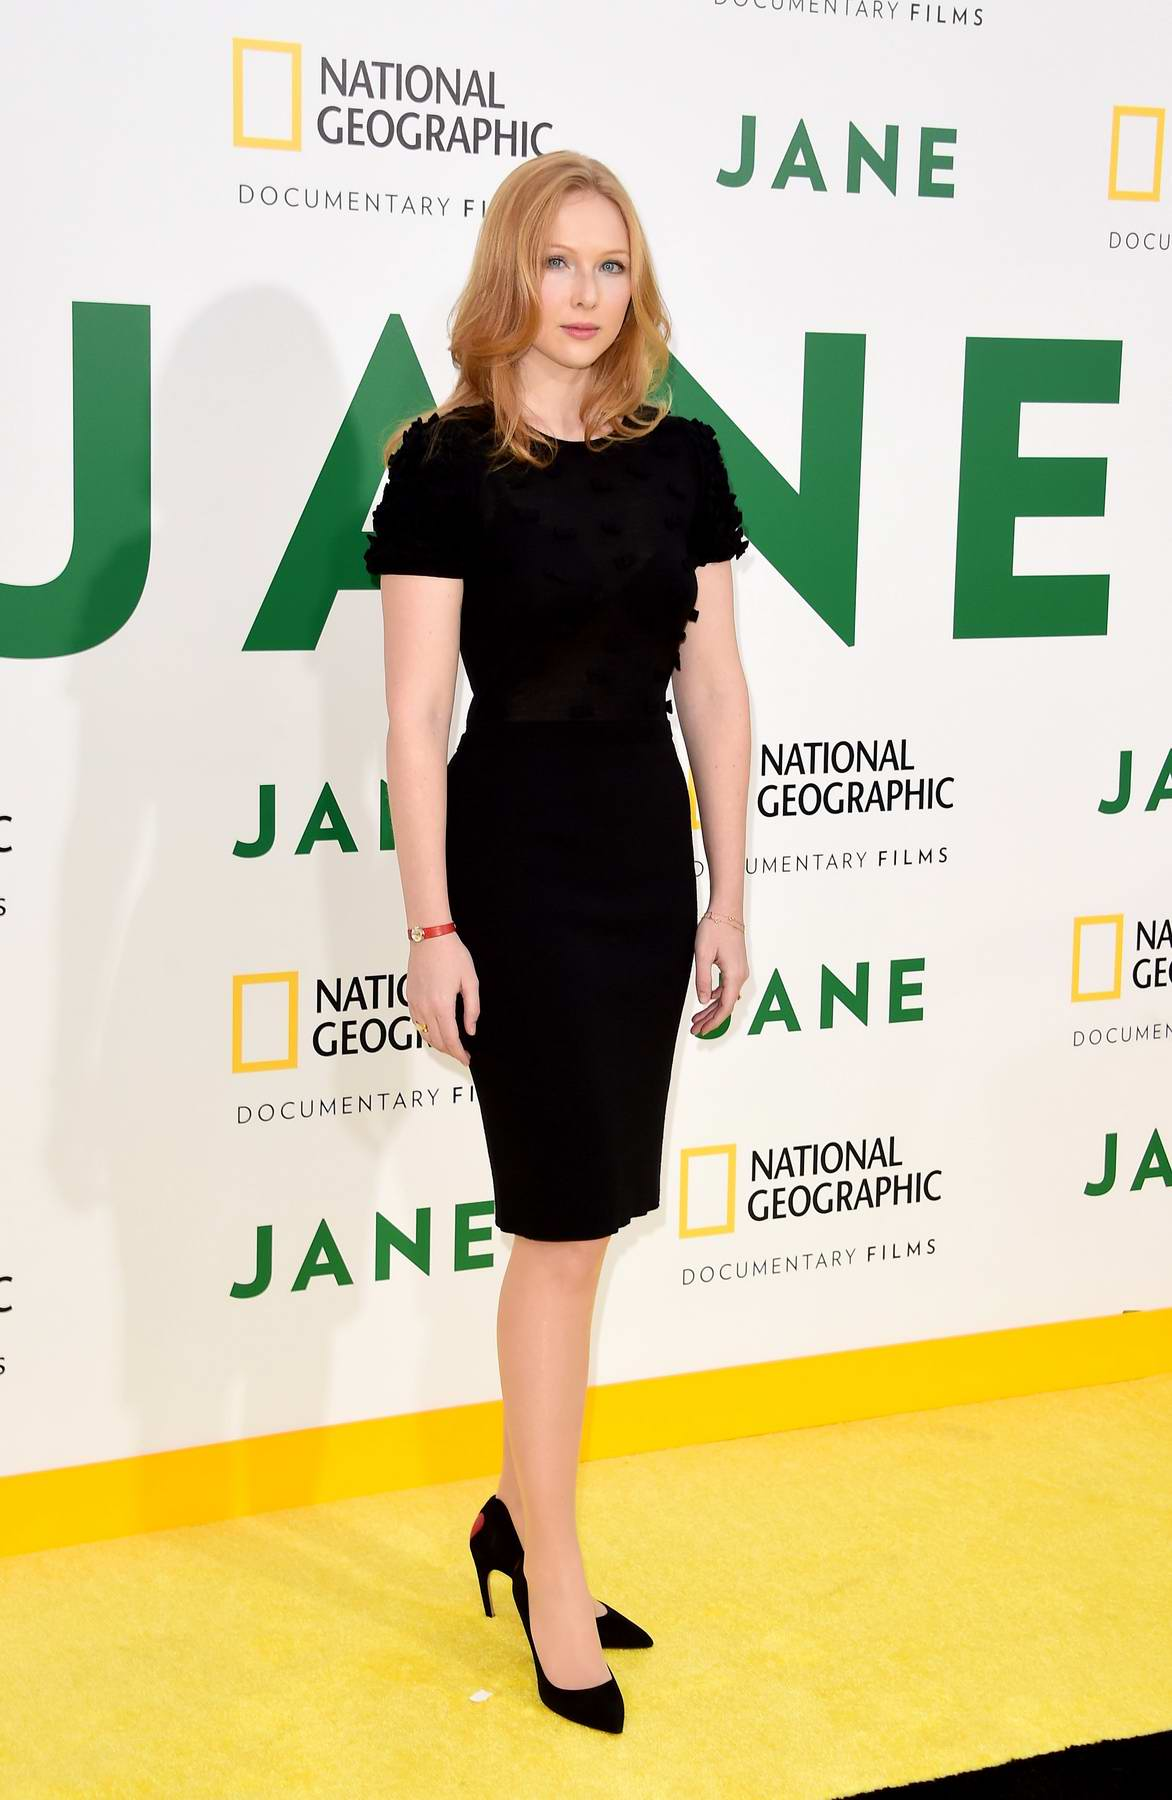 Molly Quinn at the premiere of National Geographic Documentary Films 'Jane' in Los Angeles